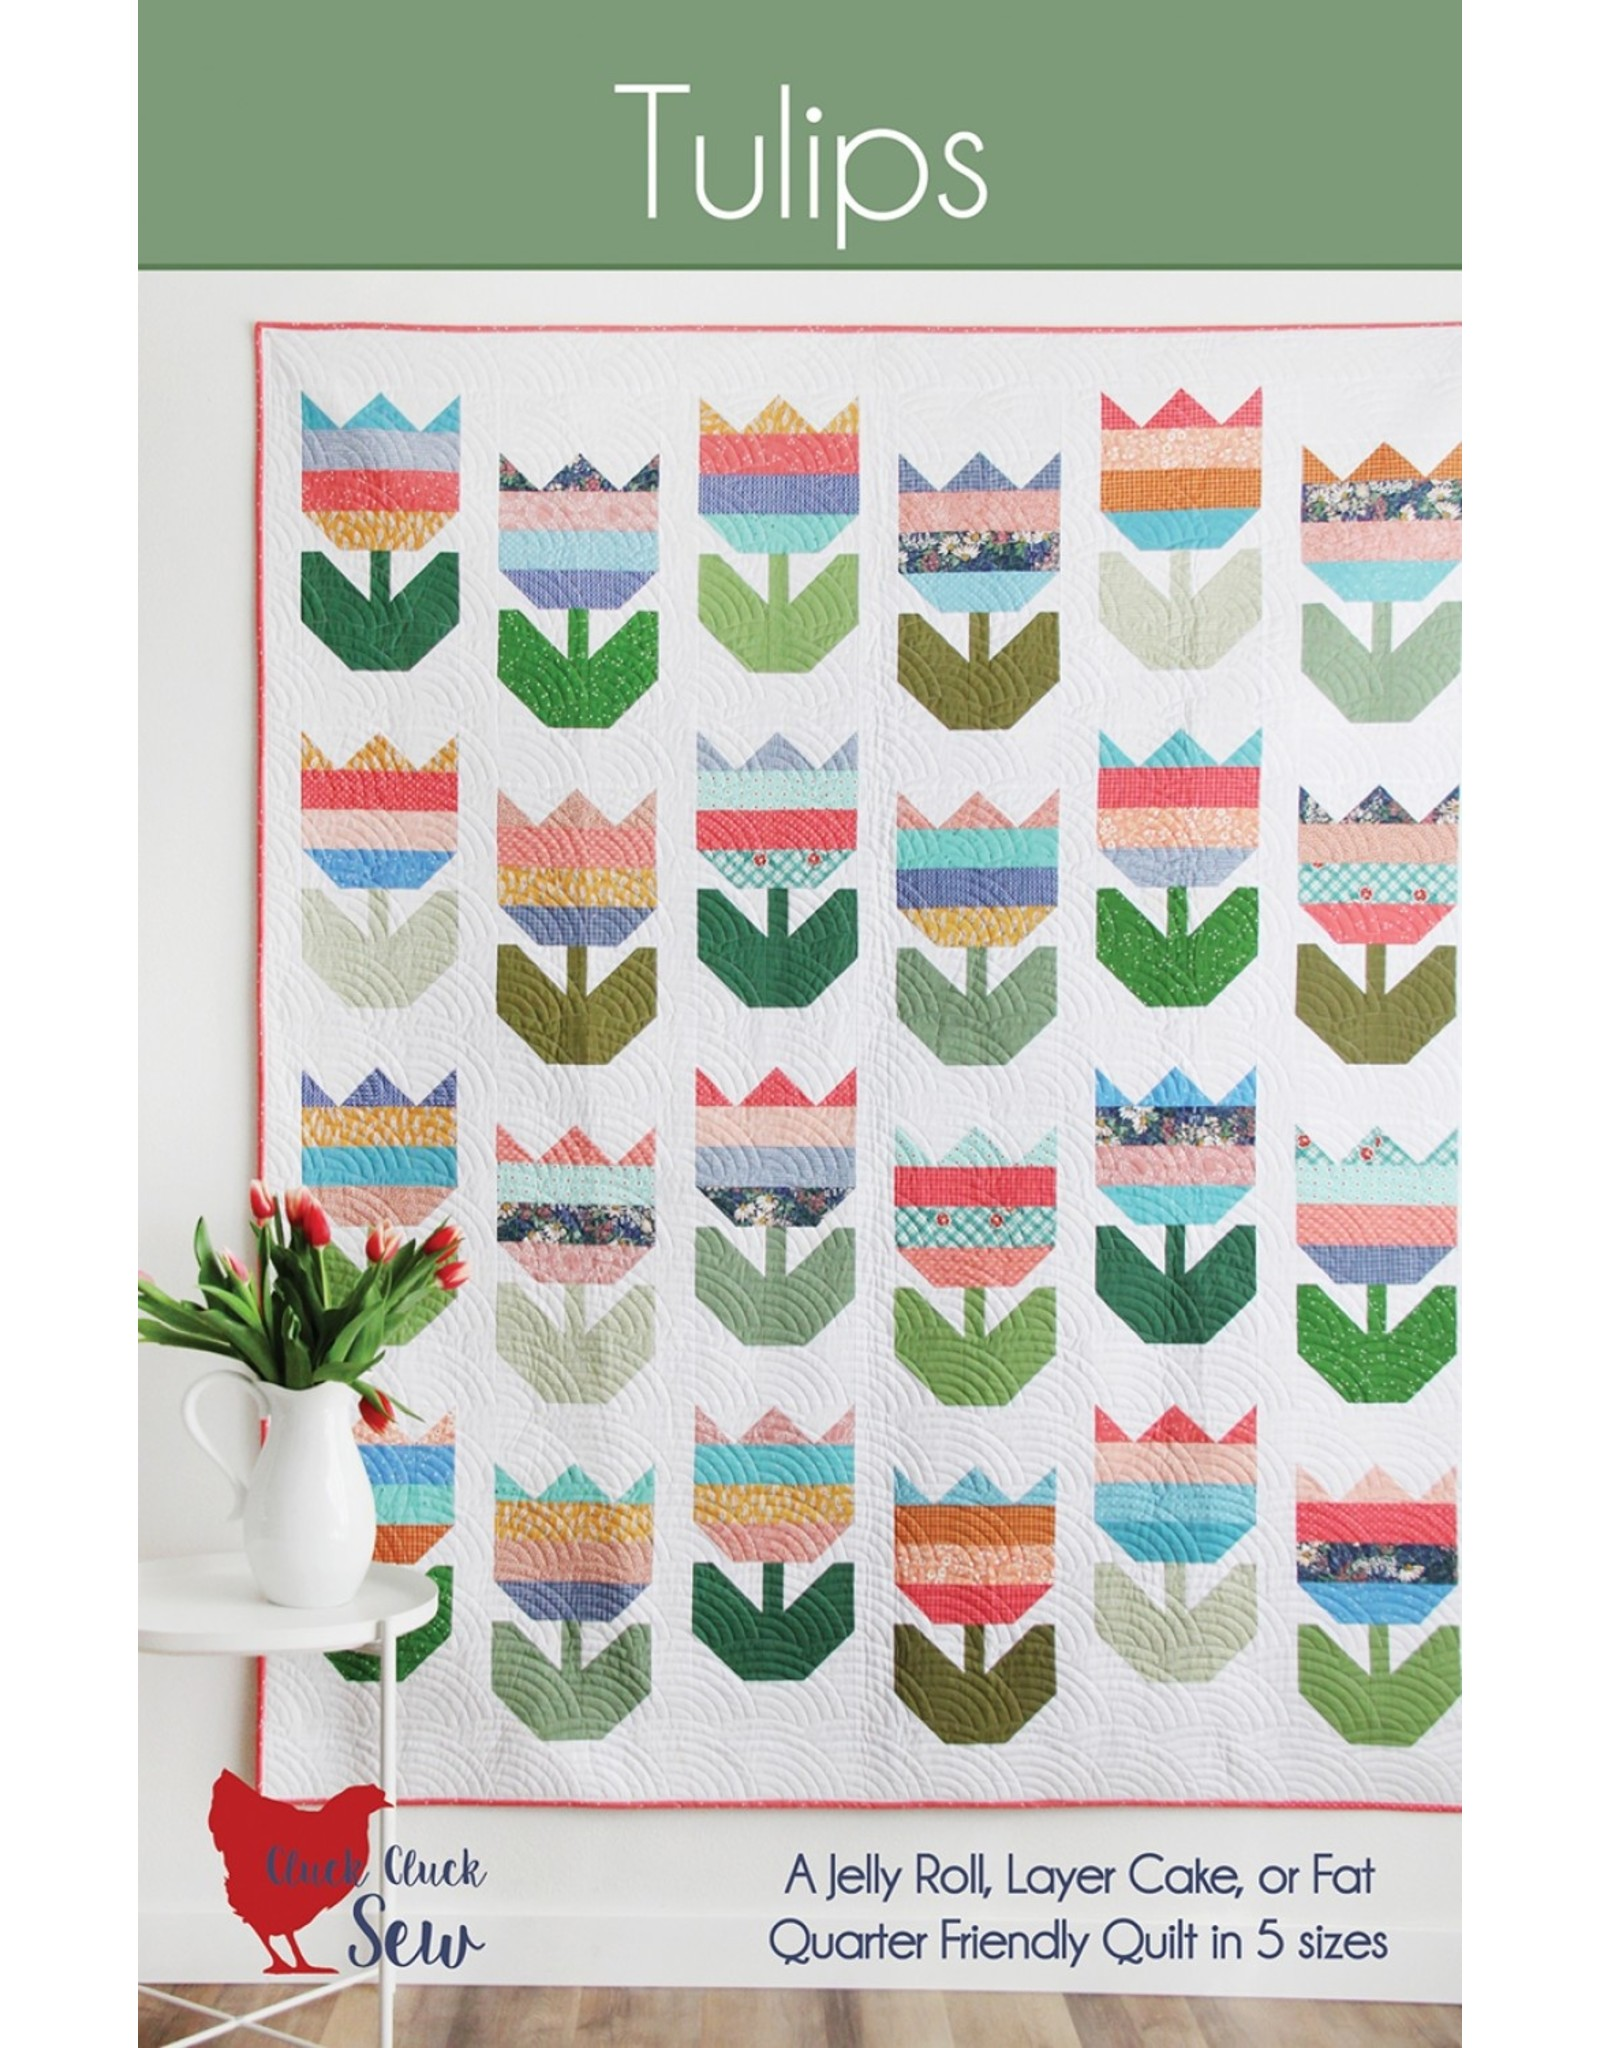 Cluck Cluck Sew Cluck Cluck Sew - Tulips